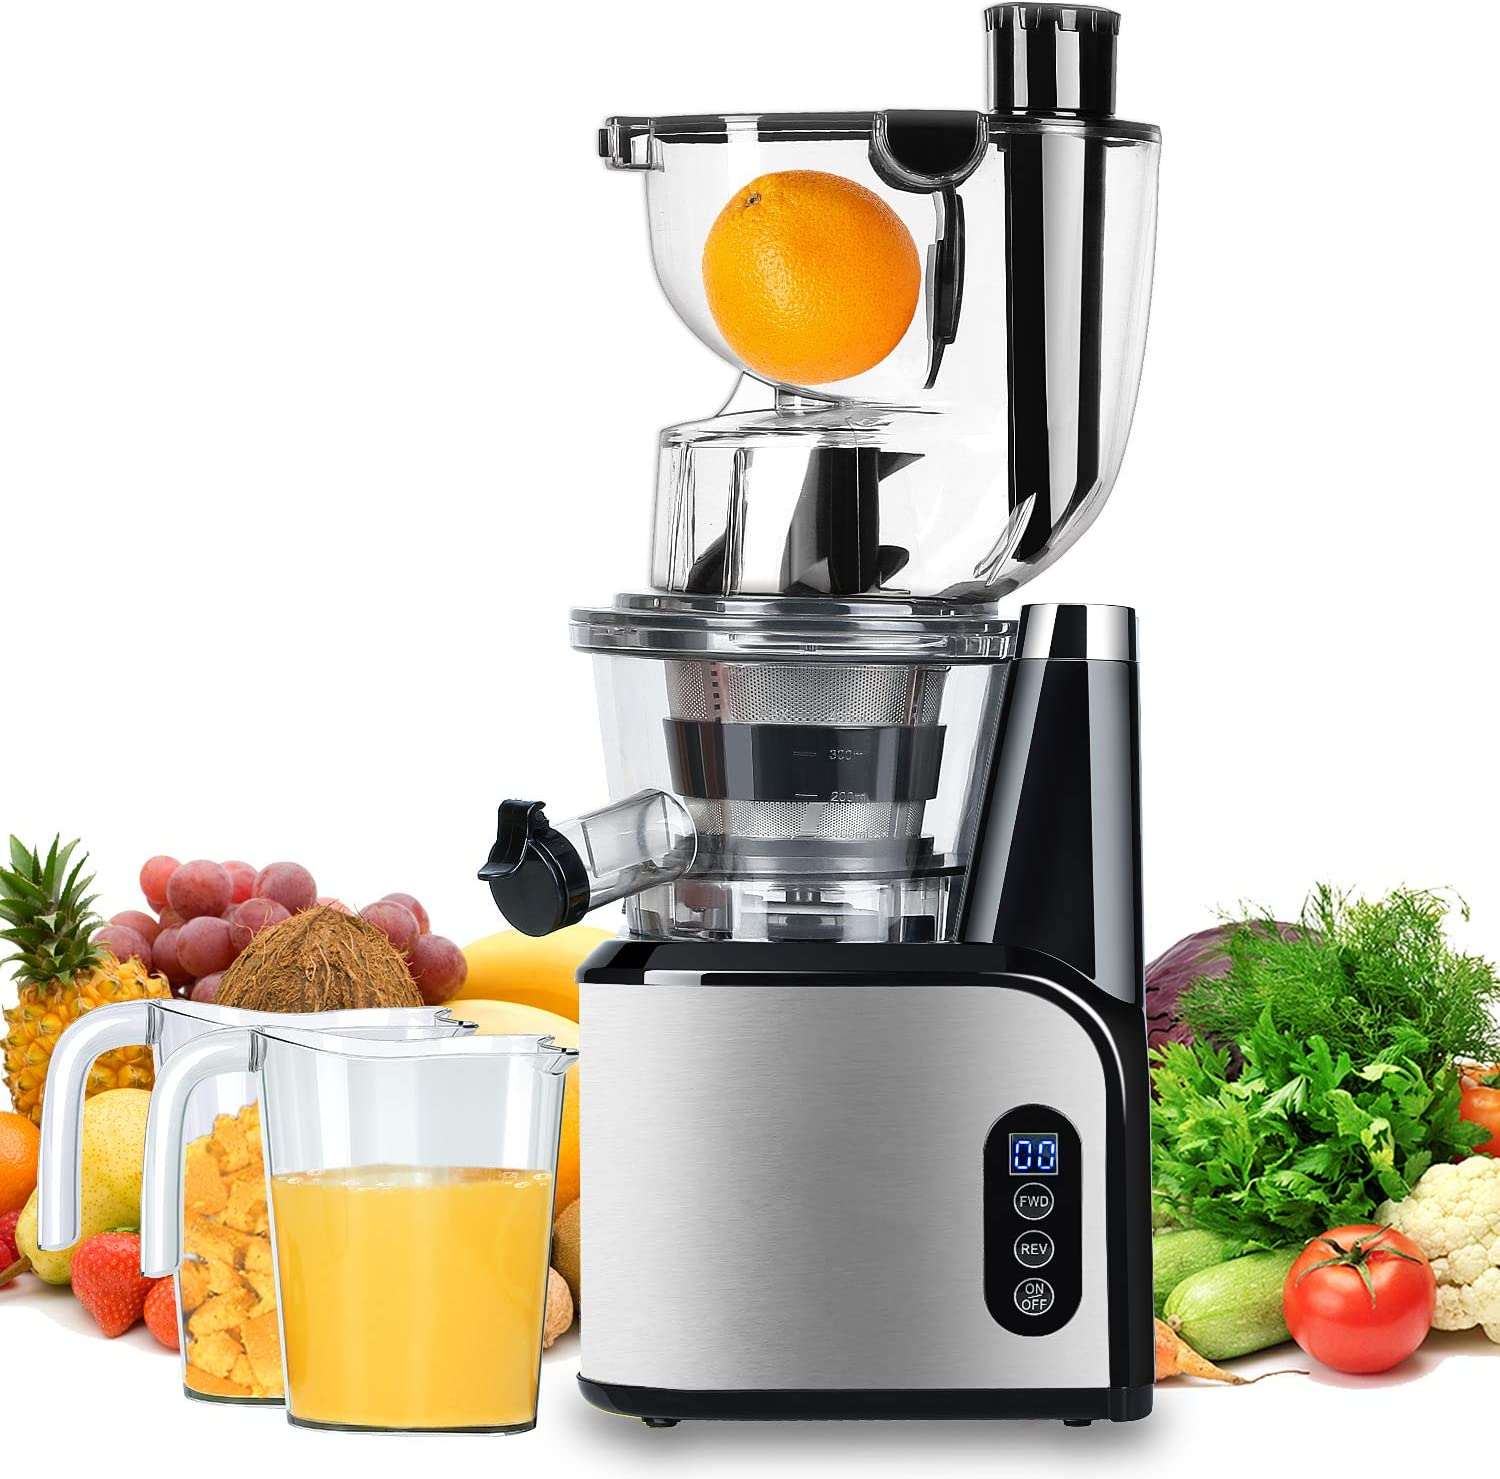 Aobosi Slow Masticating Juicer 83mm(3.15inch) Wide Chute